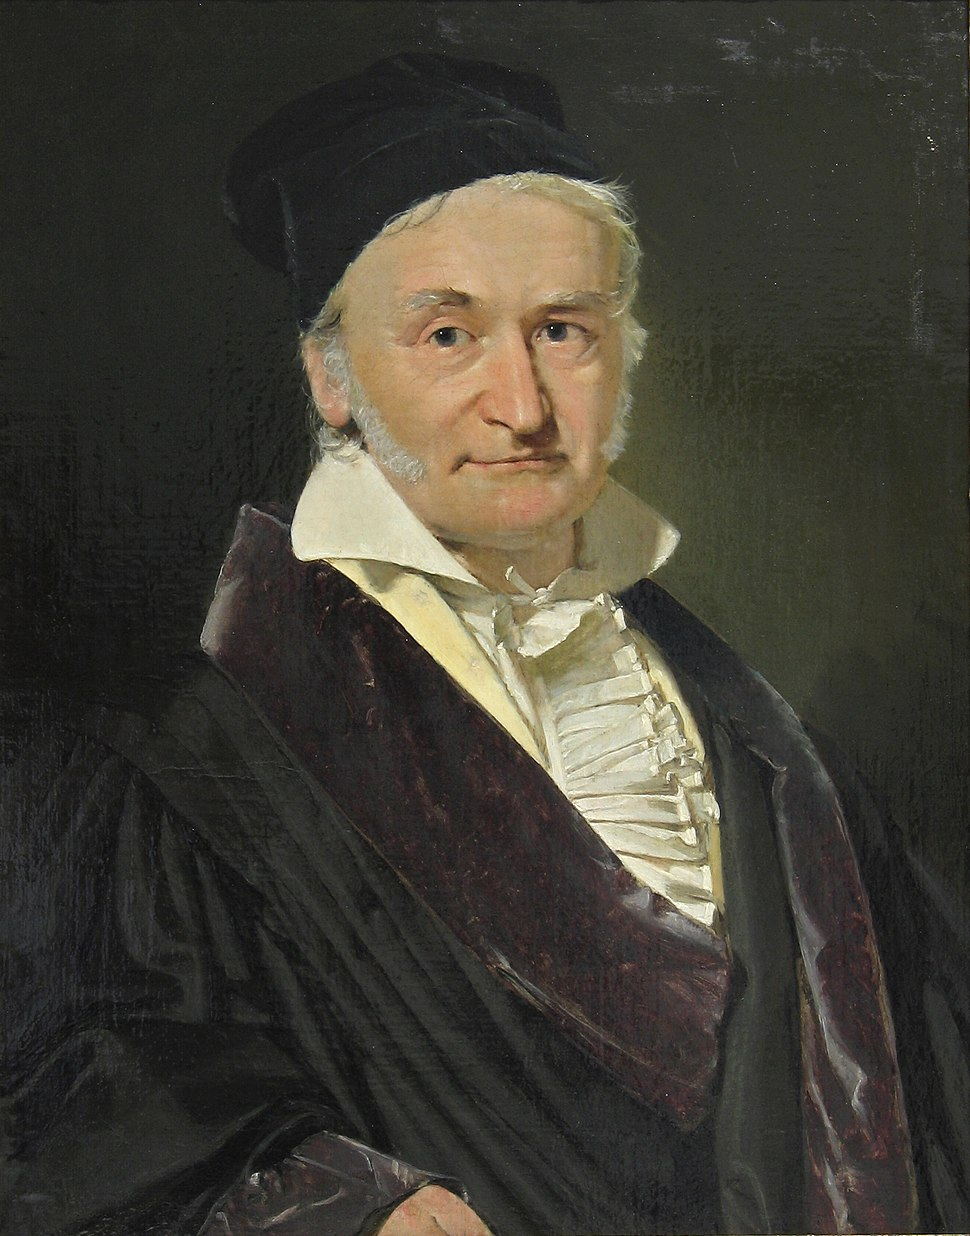 Carl Friedrich Gauss 1840 by Jensen